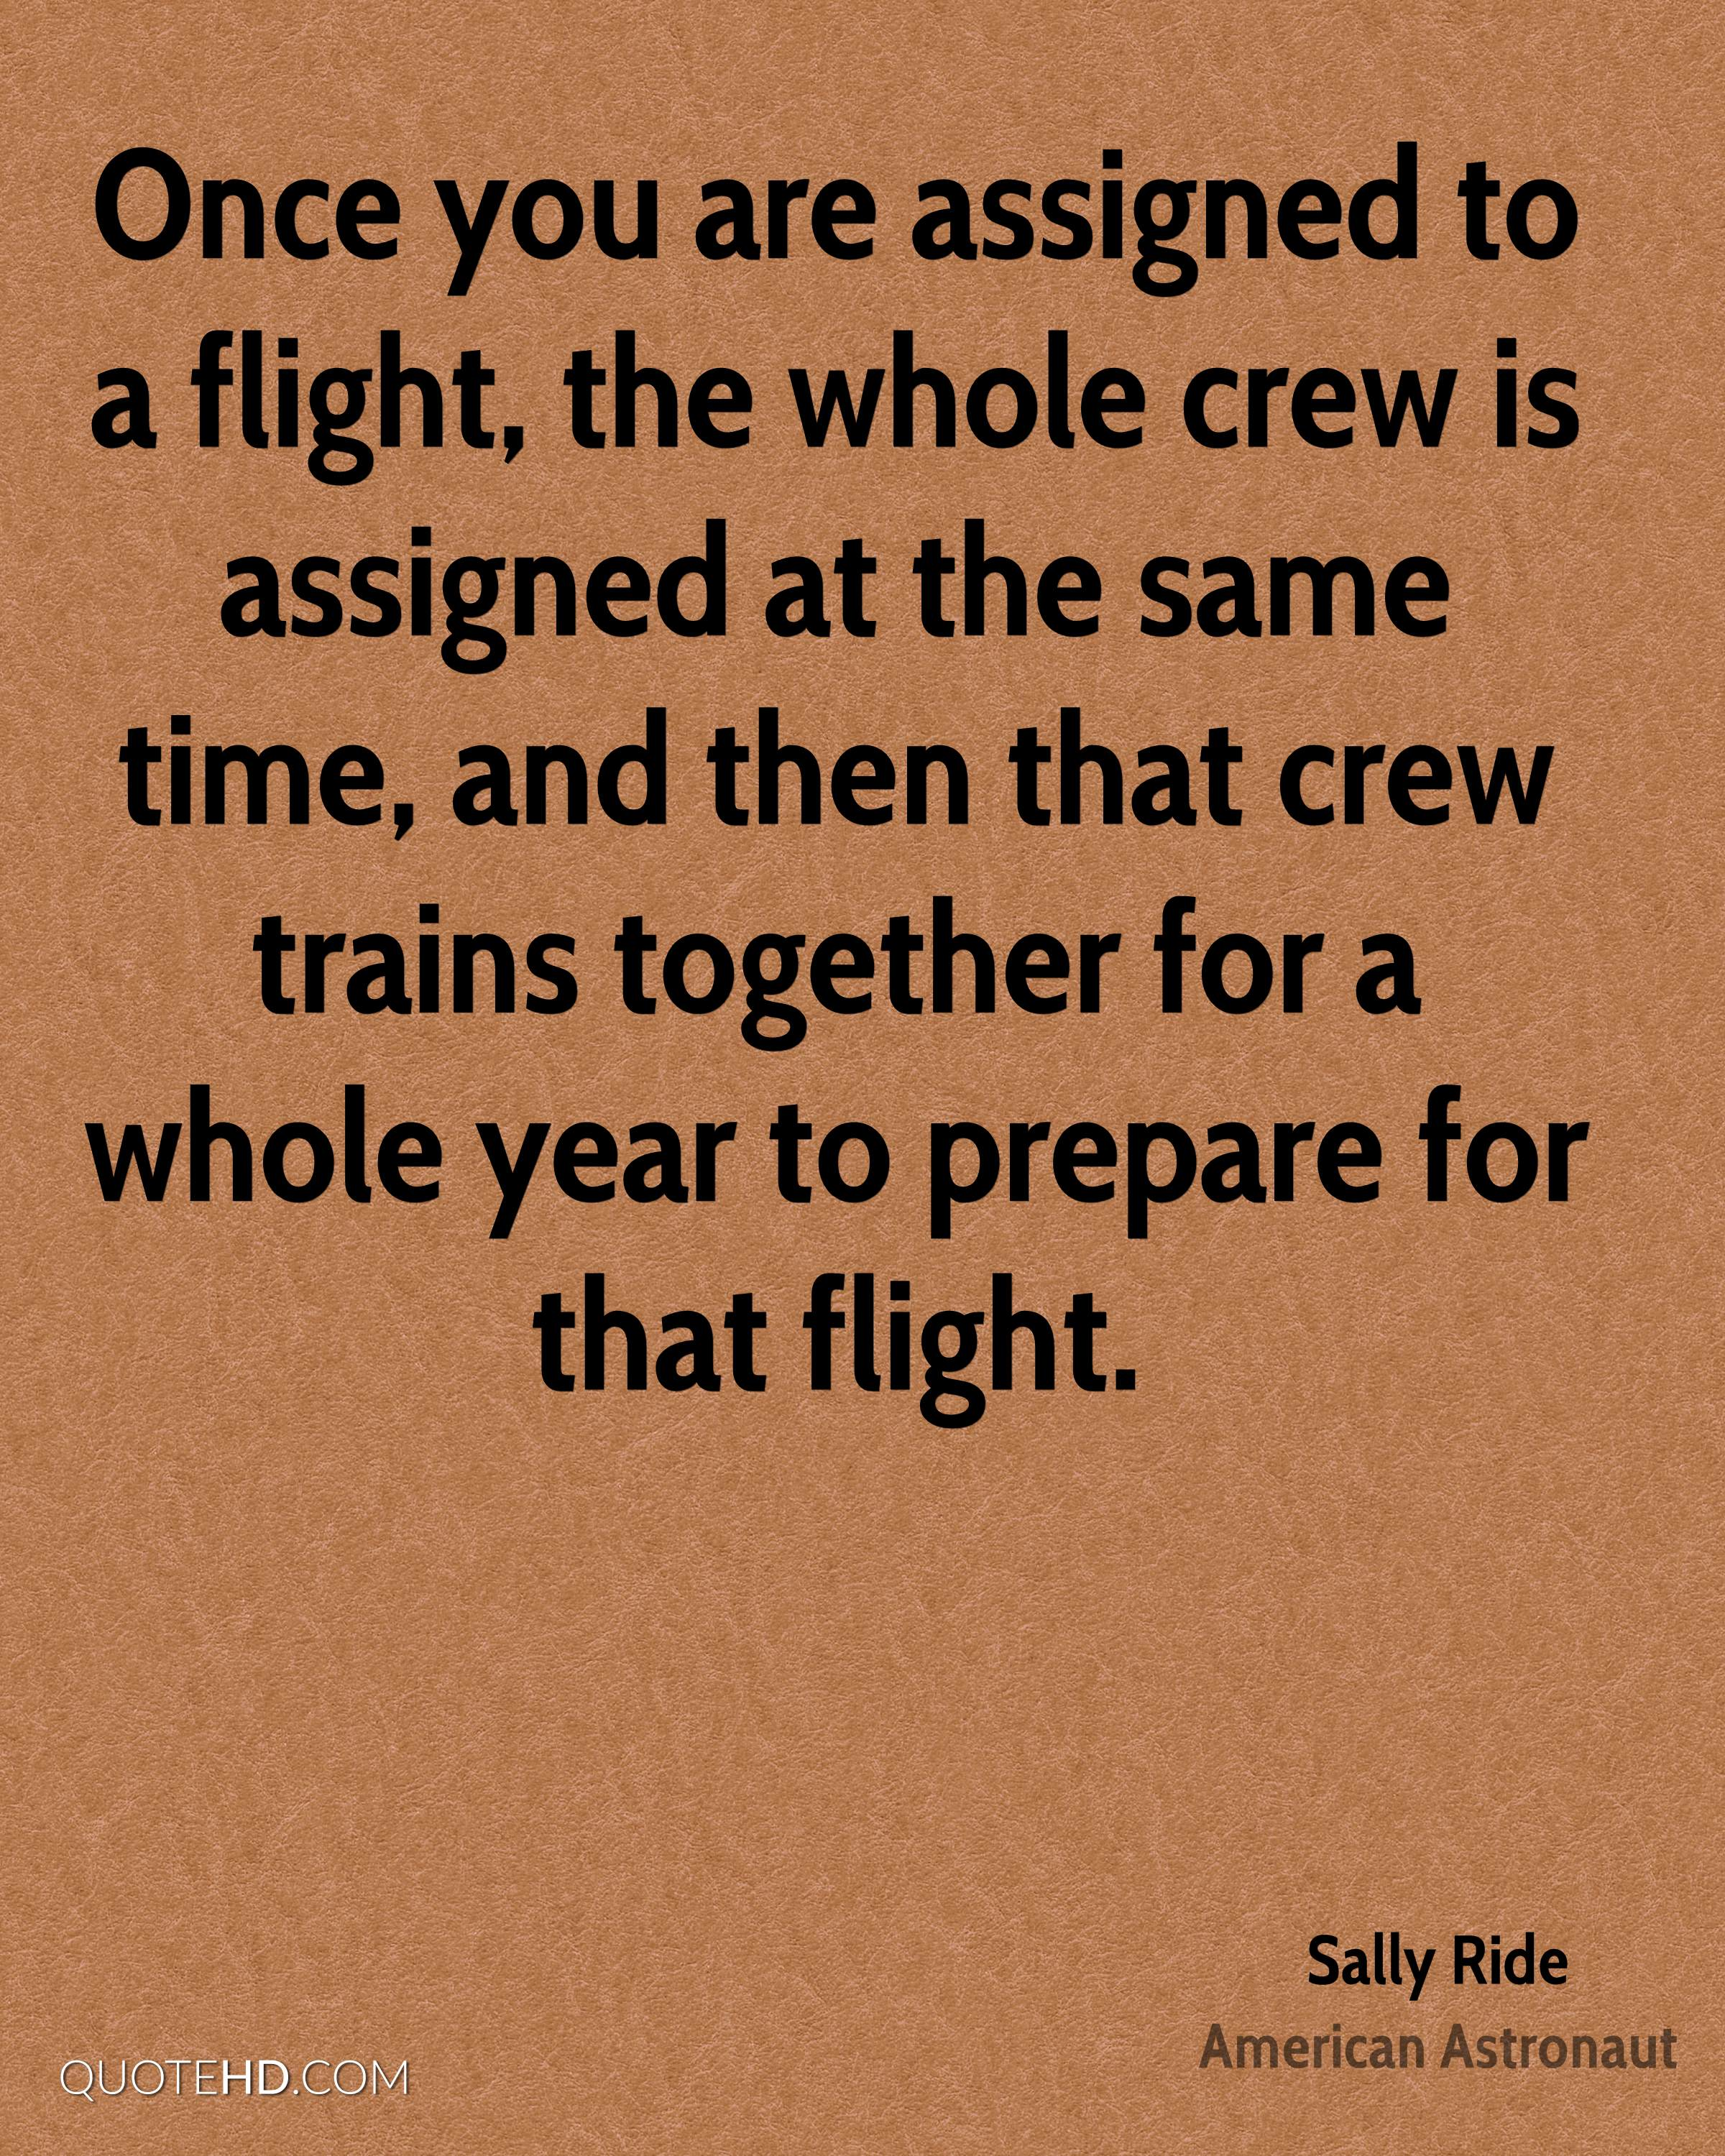 Once you are assigned to a flight, the whole crew is assigned at the same time, and then that crew trains together for a whole year to prepare for that flight.